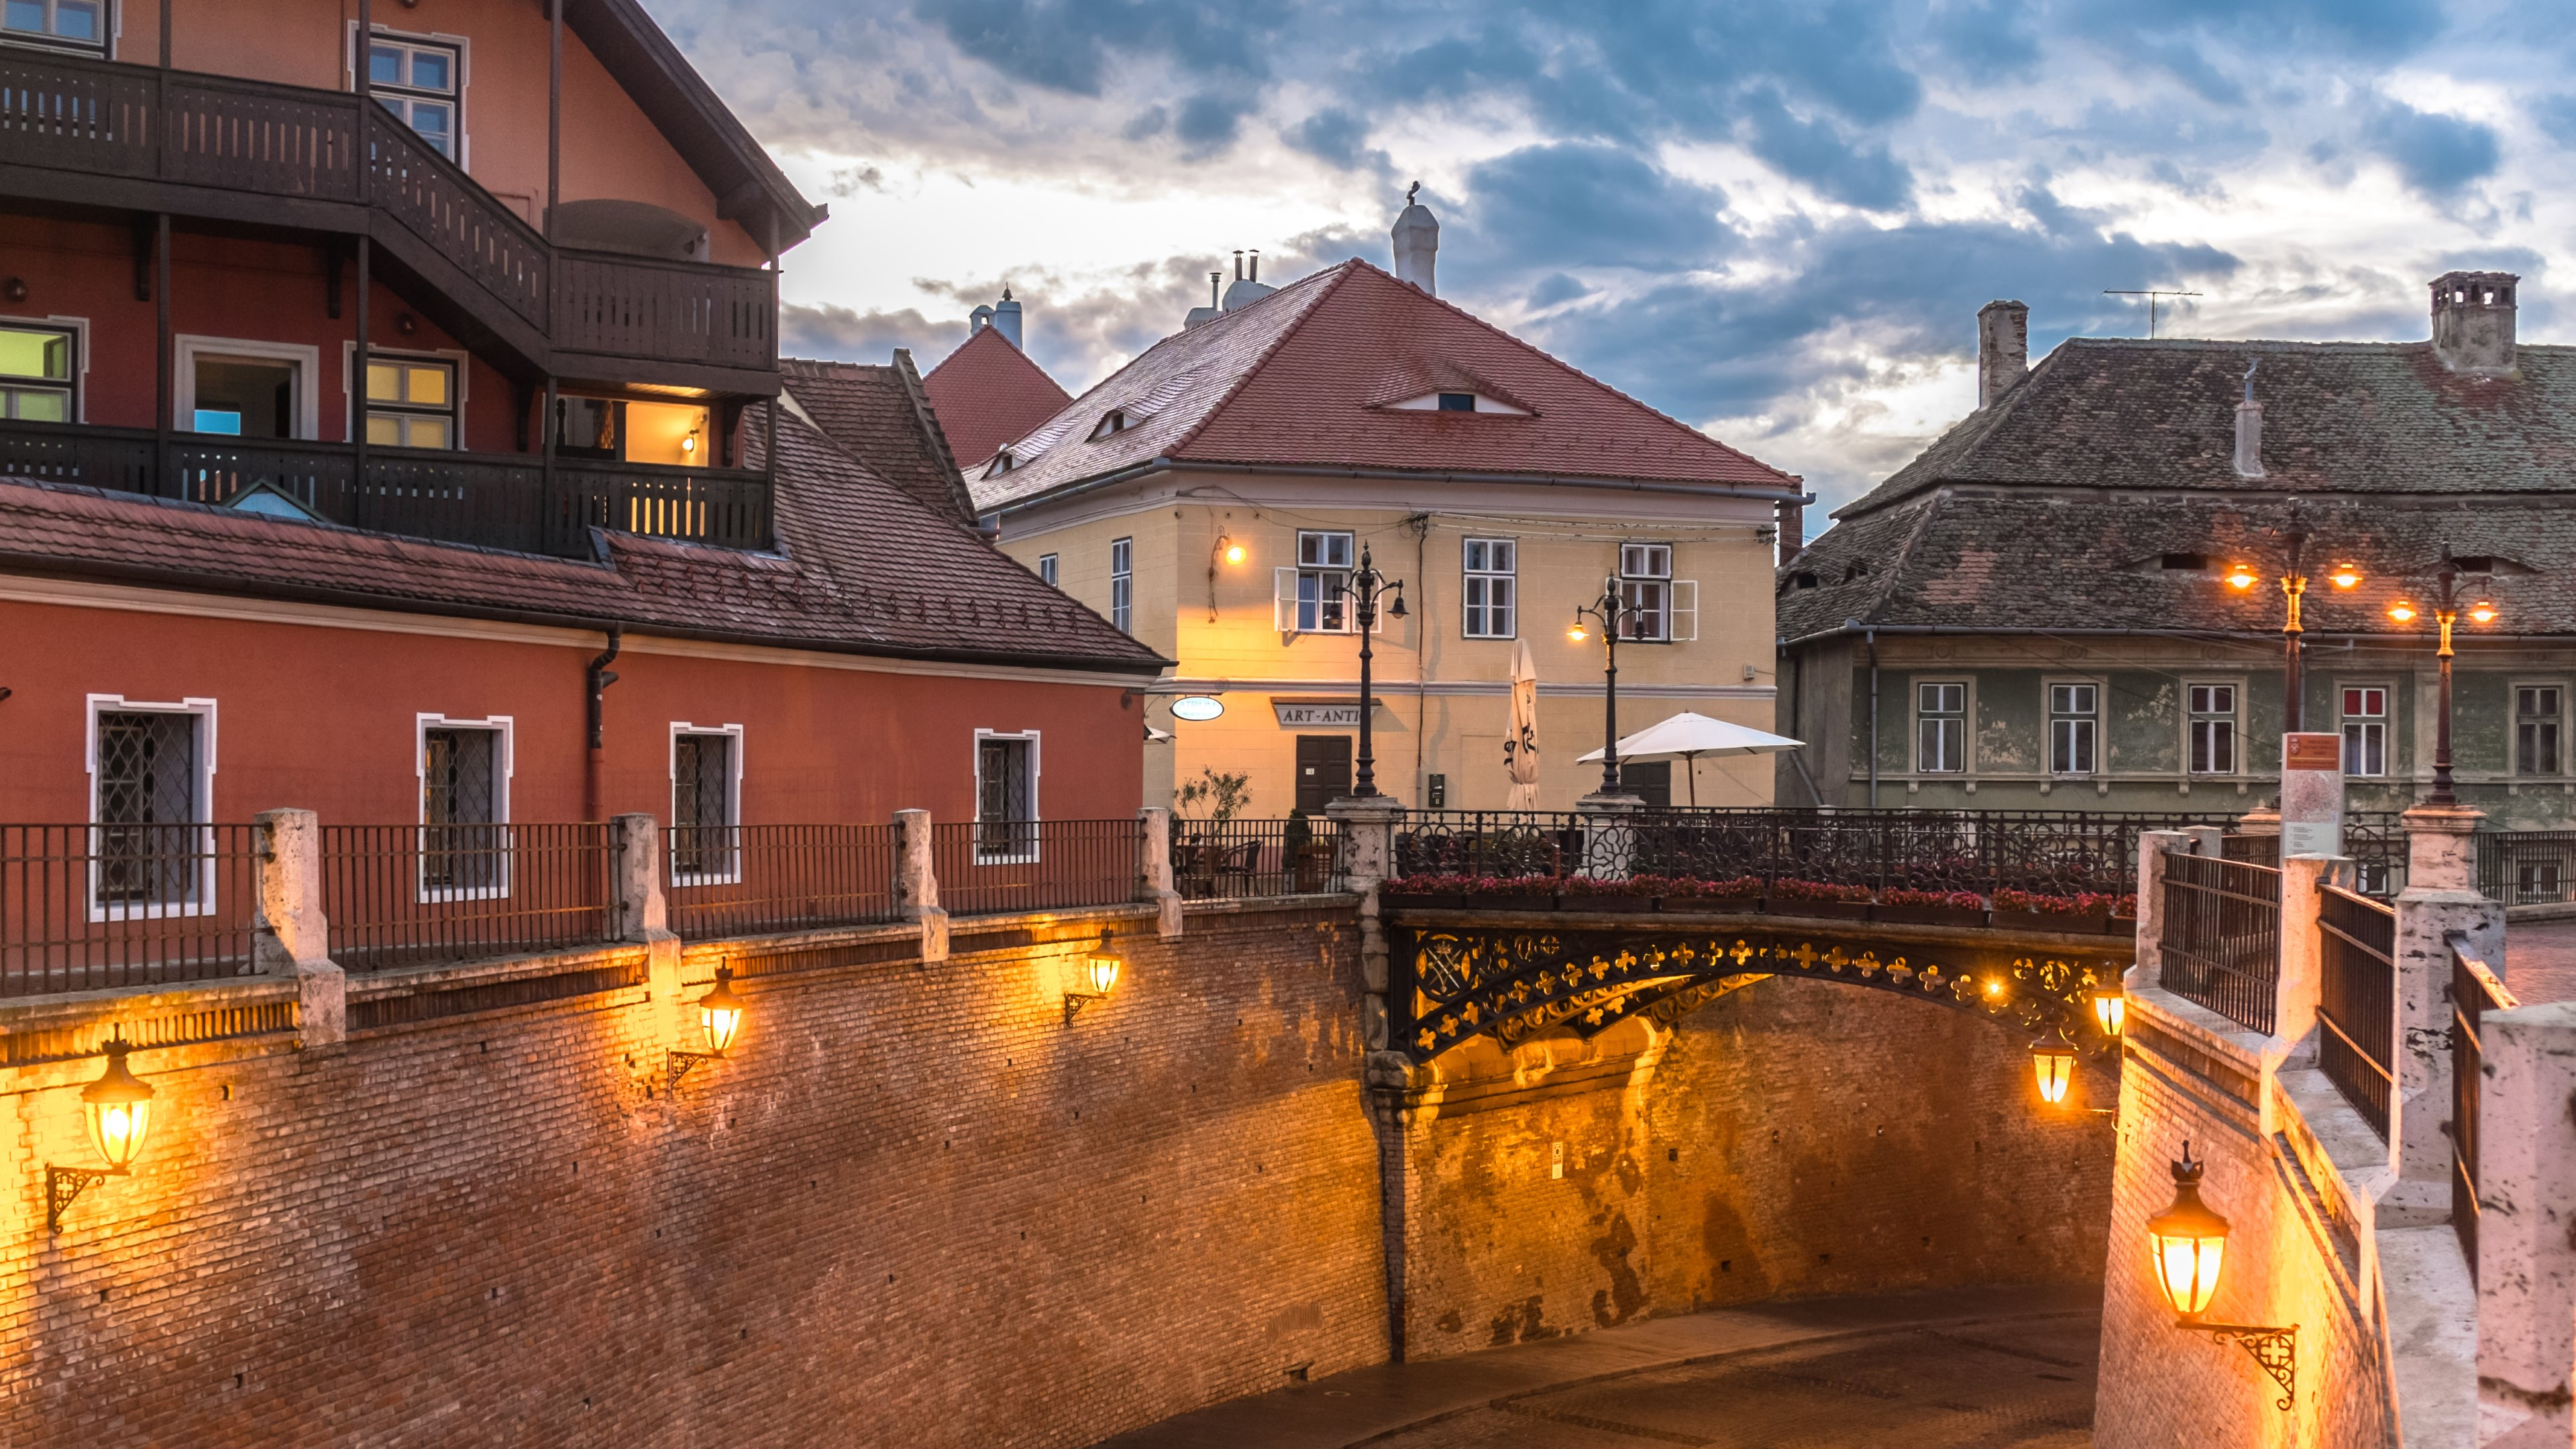 1 Sibiu Hd Wallpapers Background Images Wallpaper Abyss